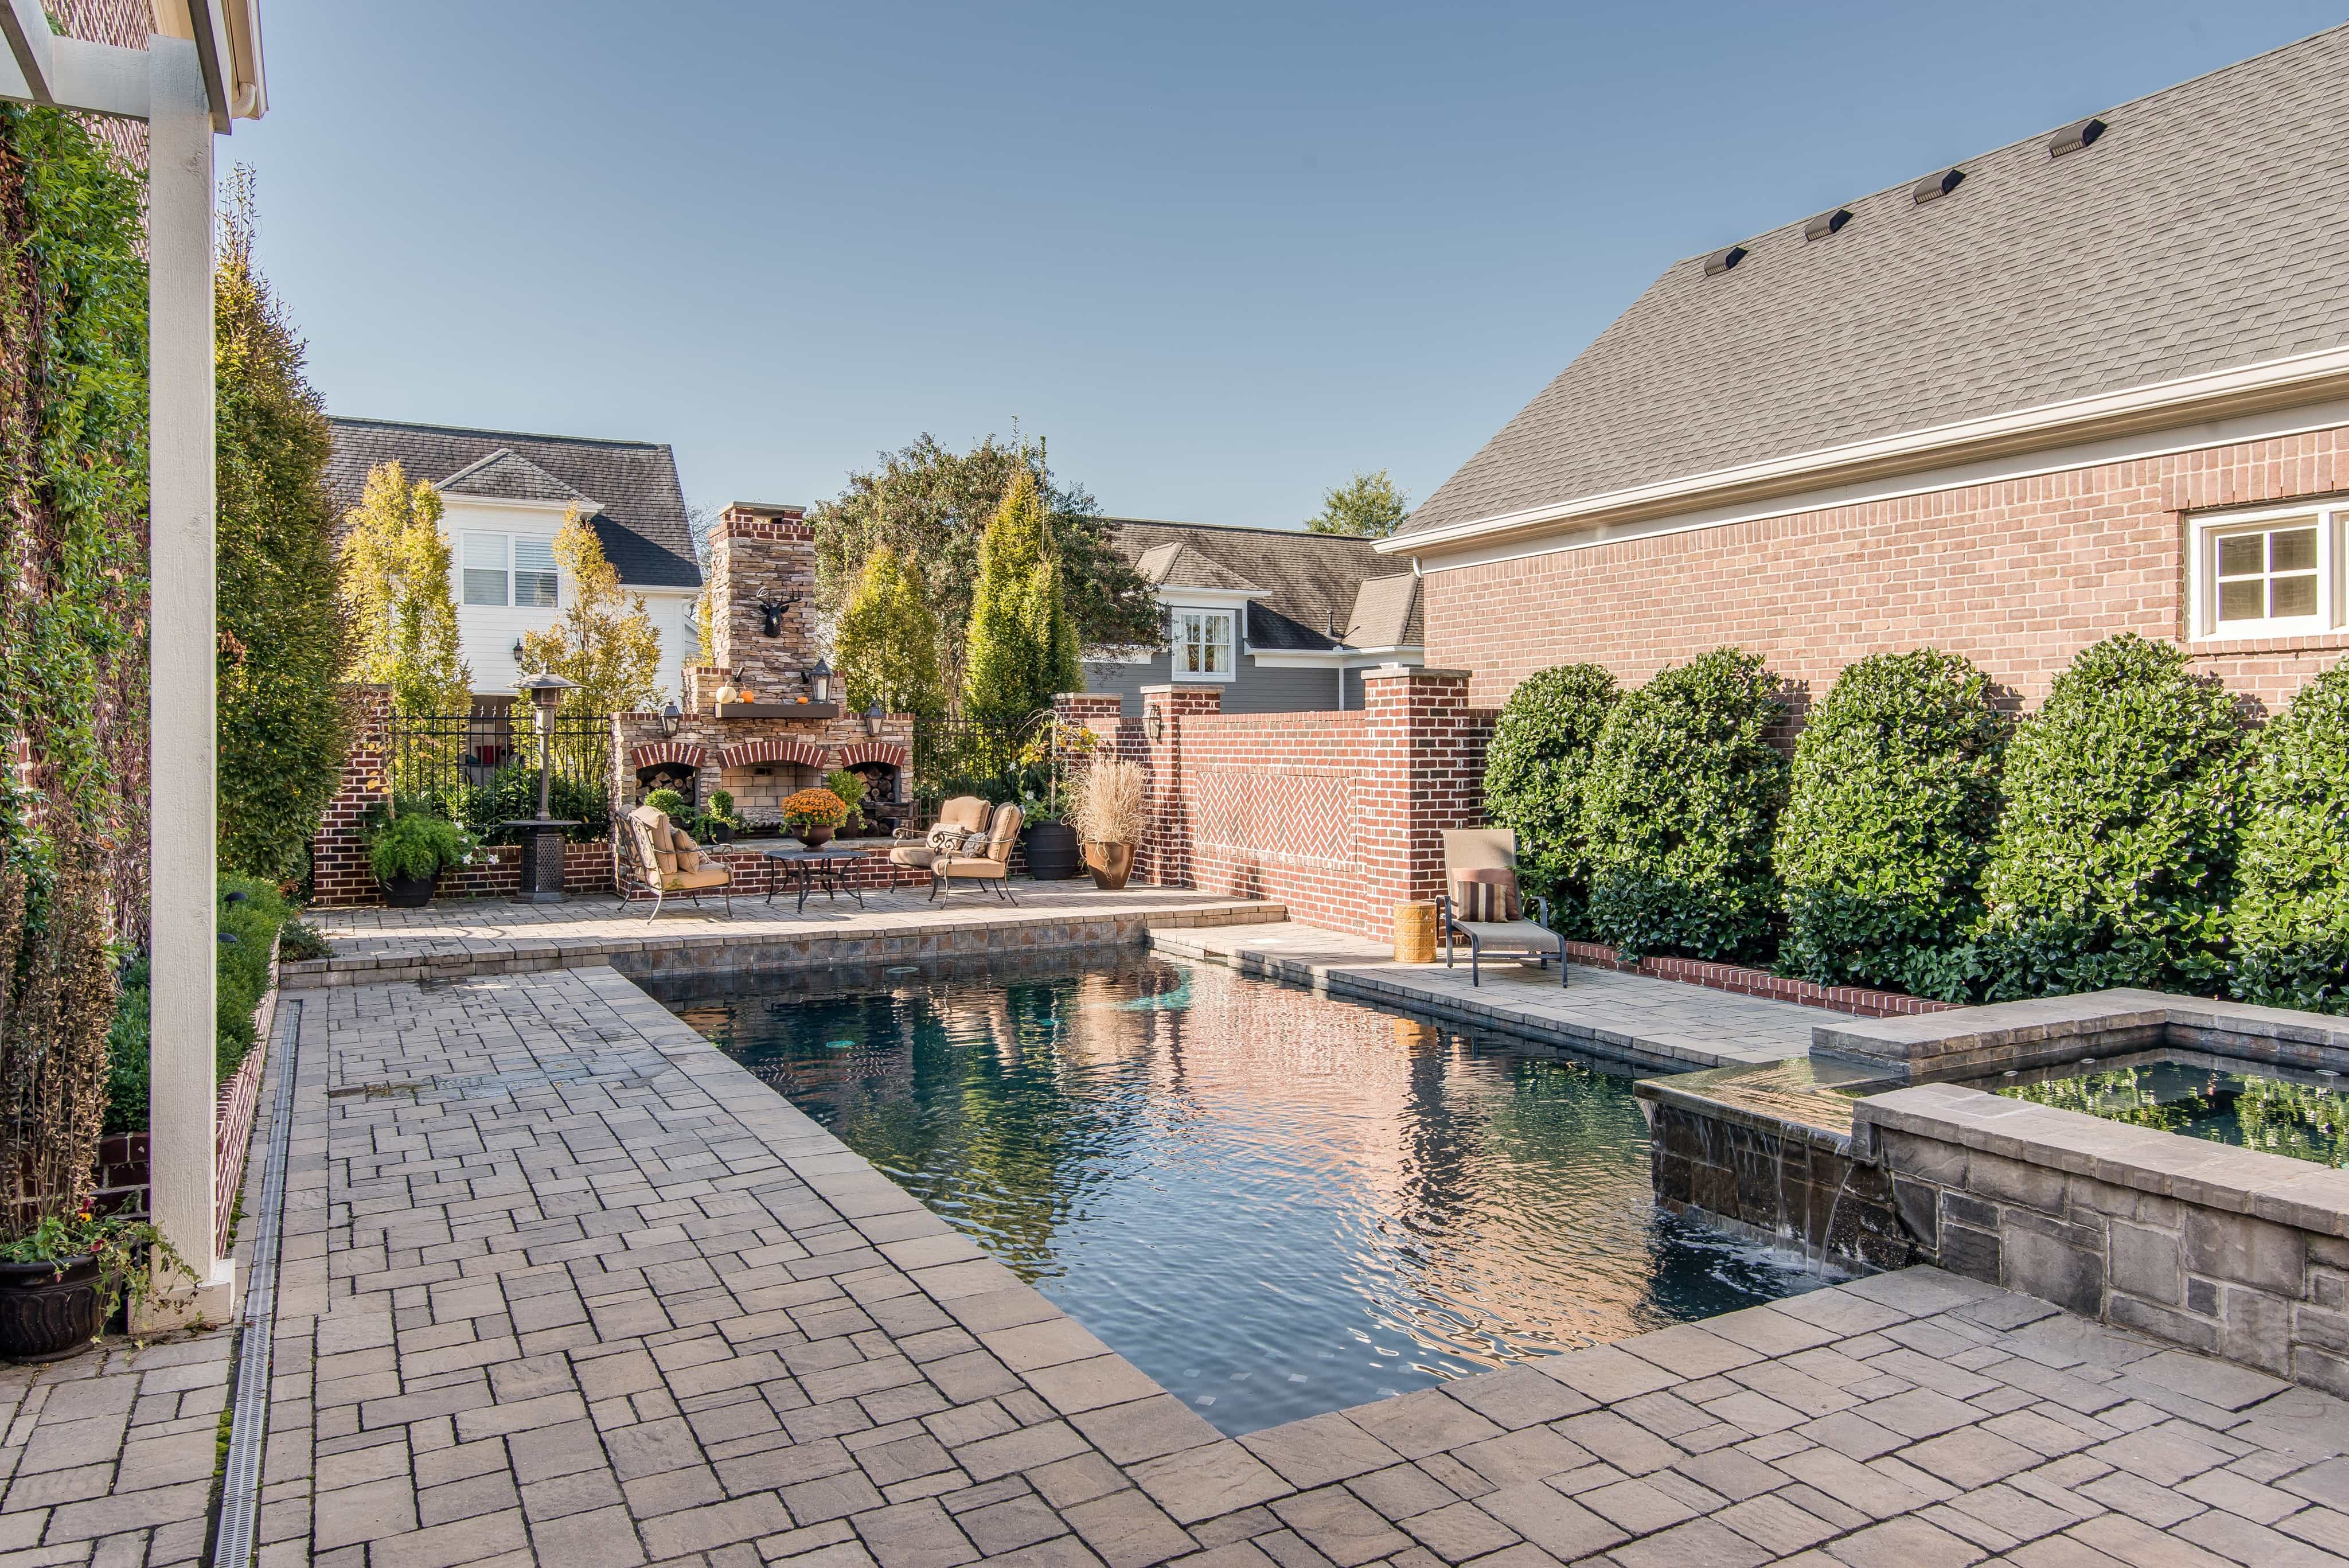 Stone And Brick Outdoor Patio With Swimming Pool 2017 (Photo 9 of 25)